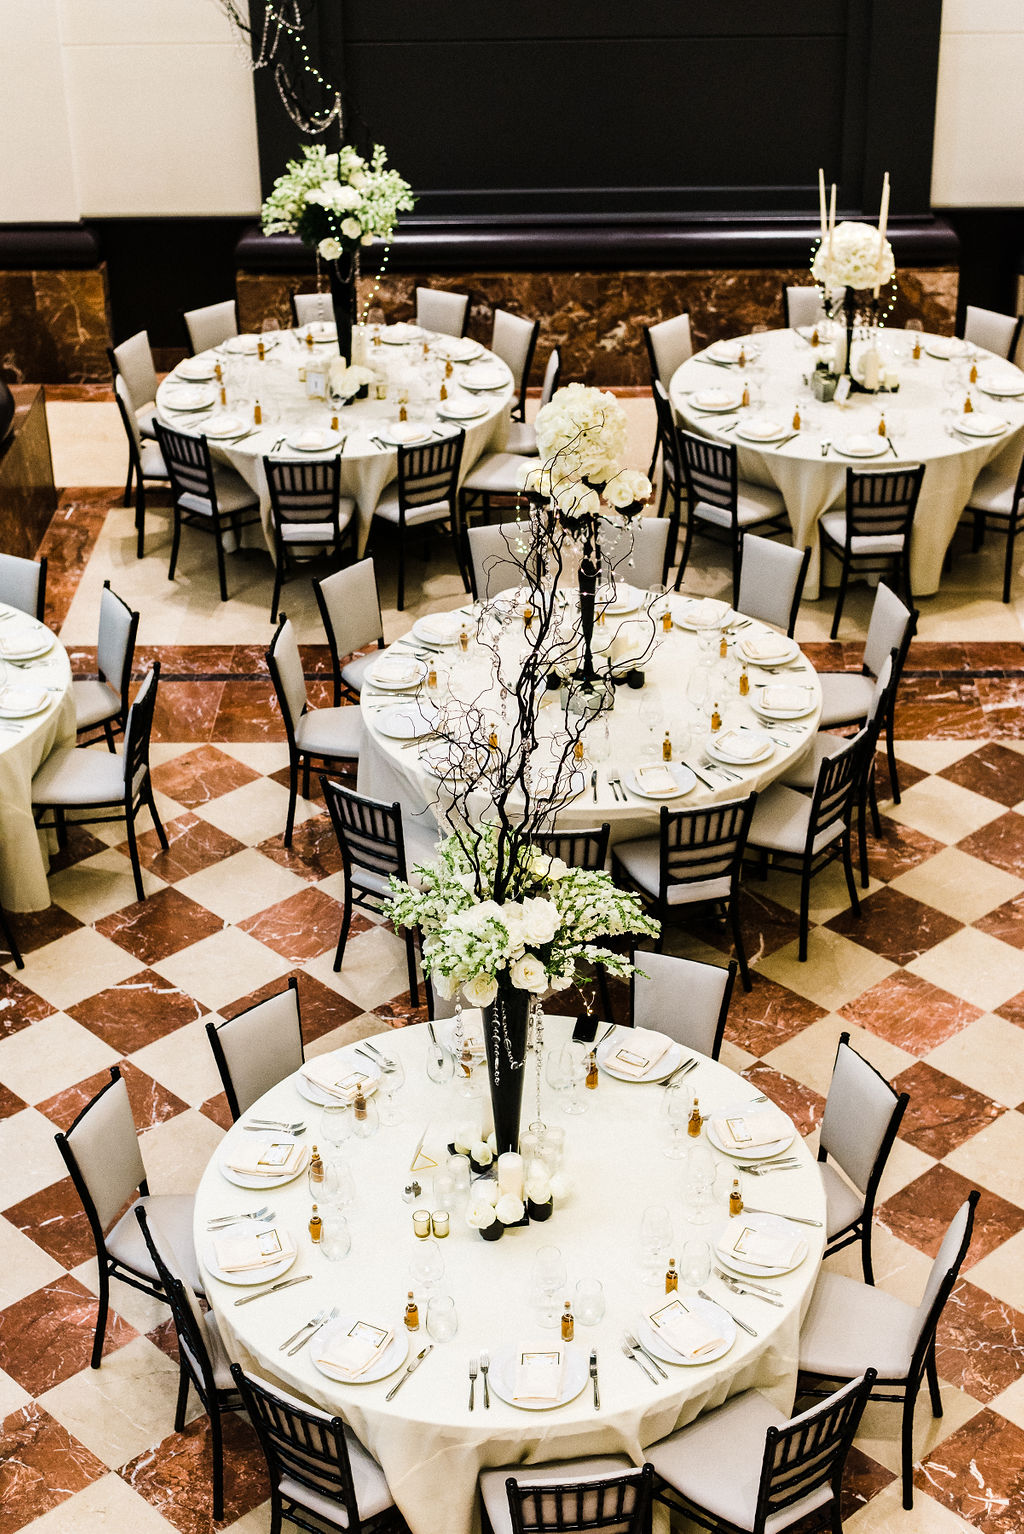 Great Gatsby themed wedding for Tyler & Melanie Anderson at the Goodwin hotel in Hartford, CT. Black chairs, tall centerpieces by Ruth L.  - Pearl Weddings & Event